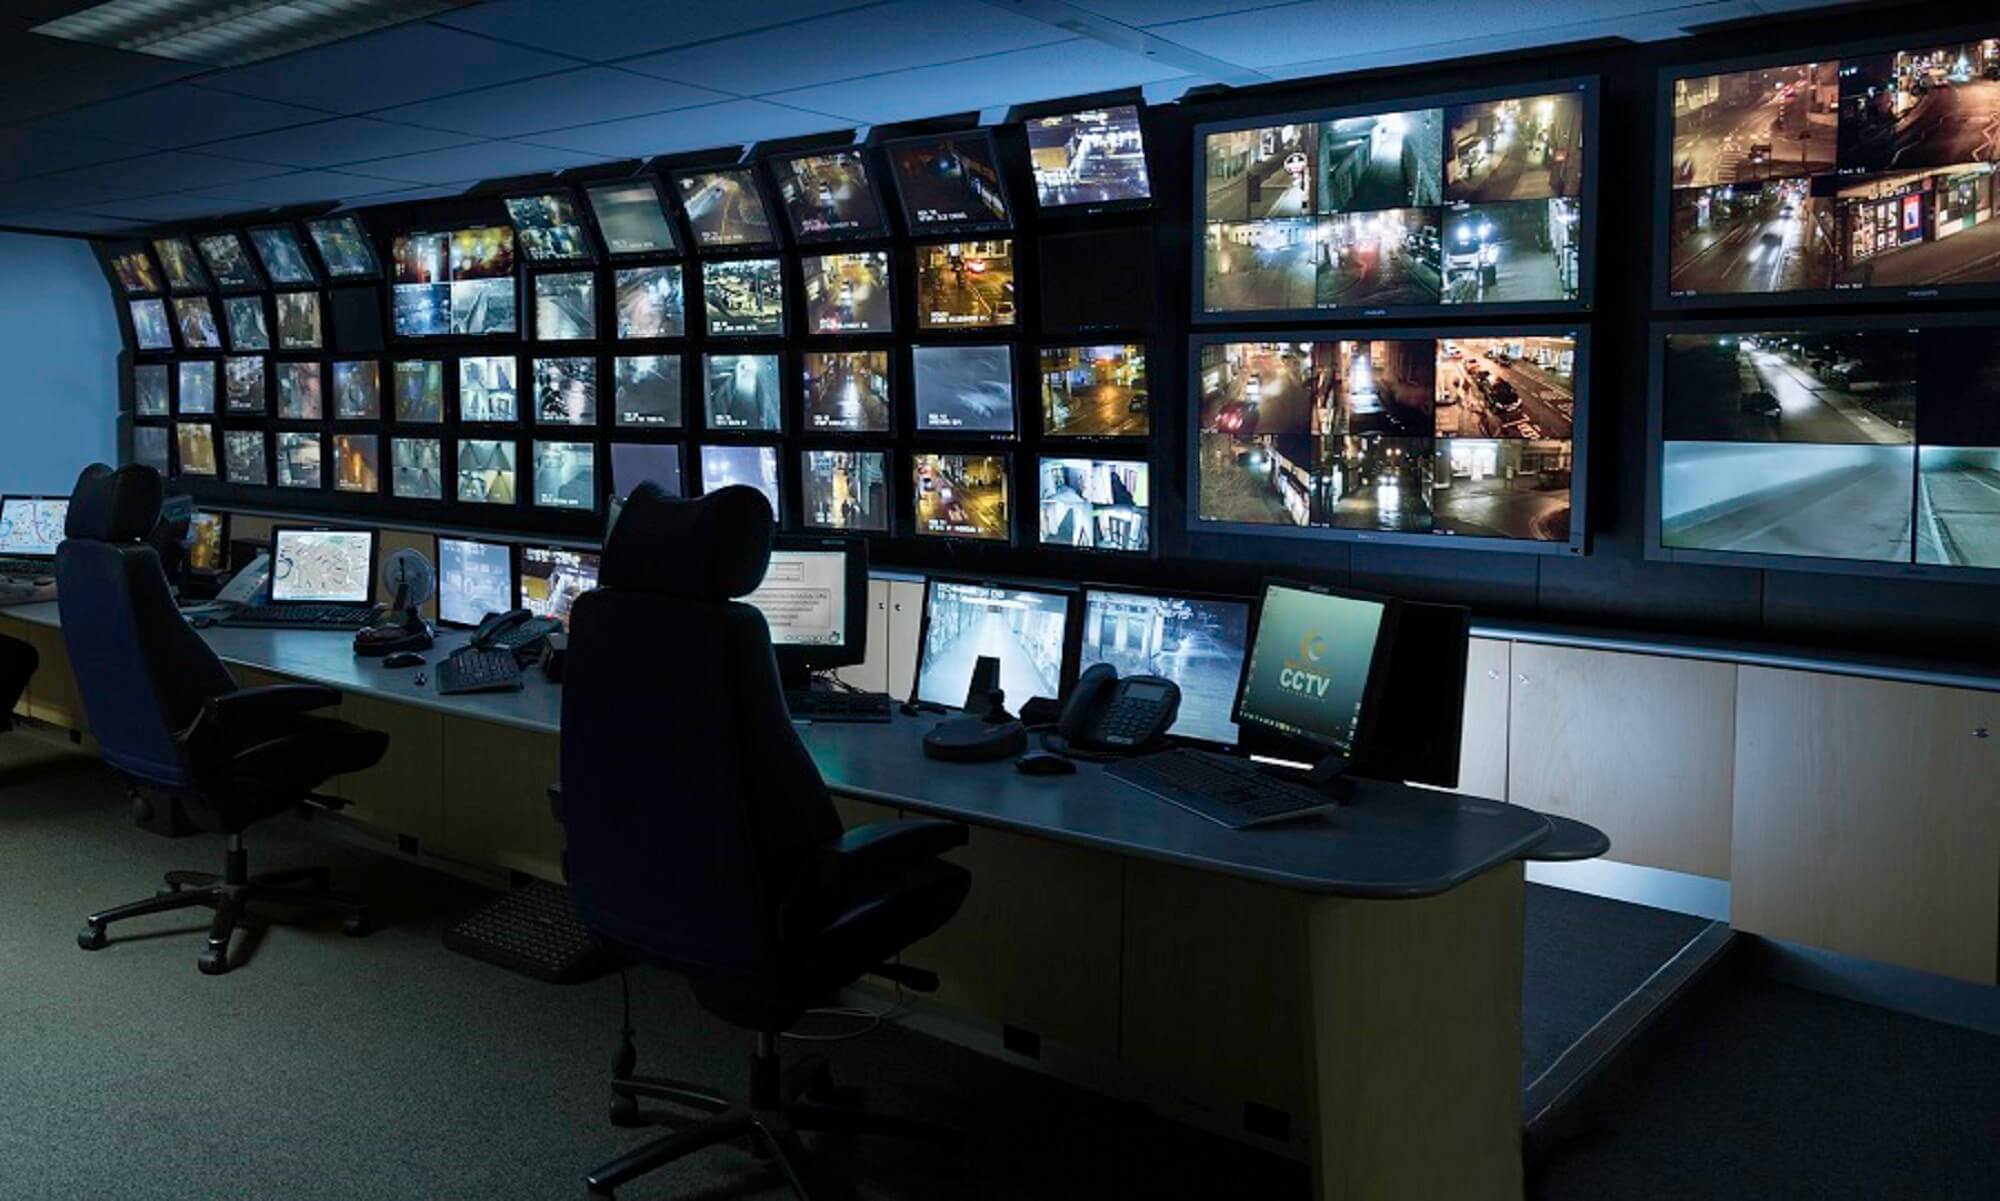 Card Control Systems Access Control Specialists